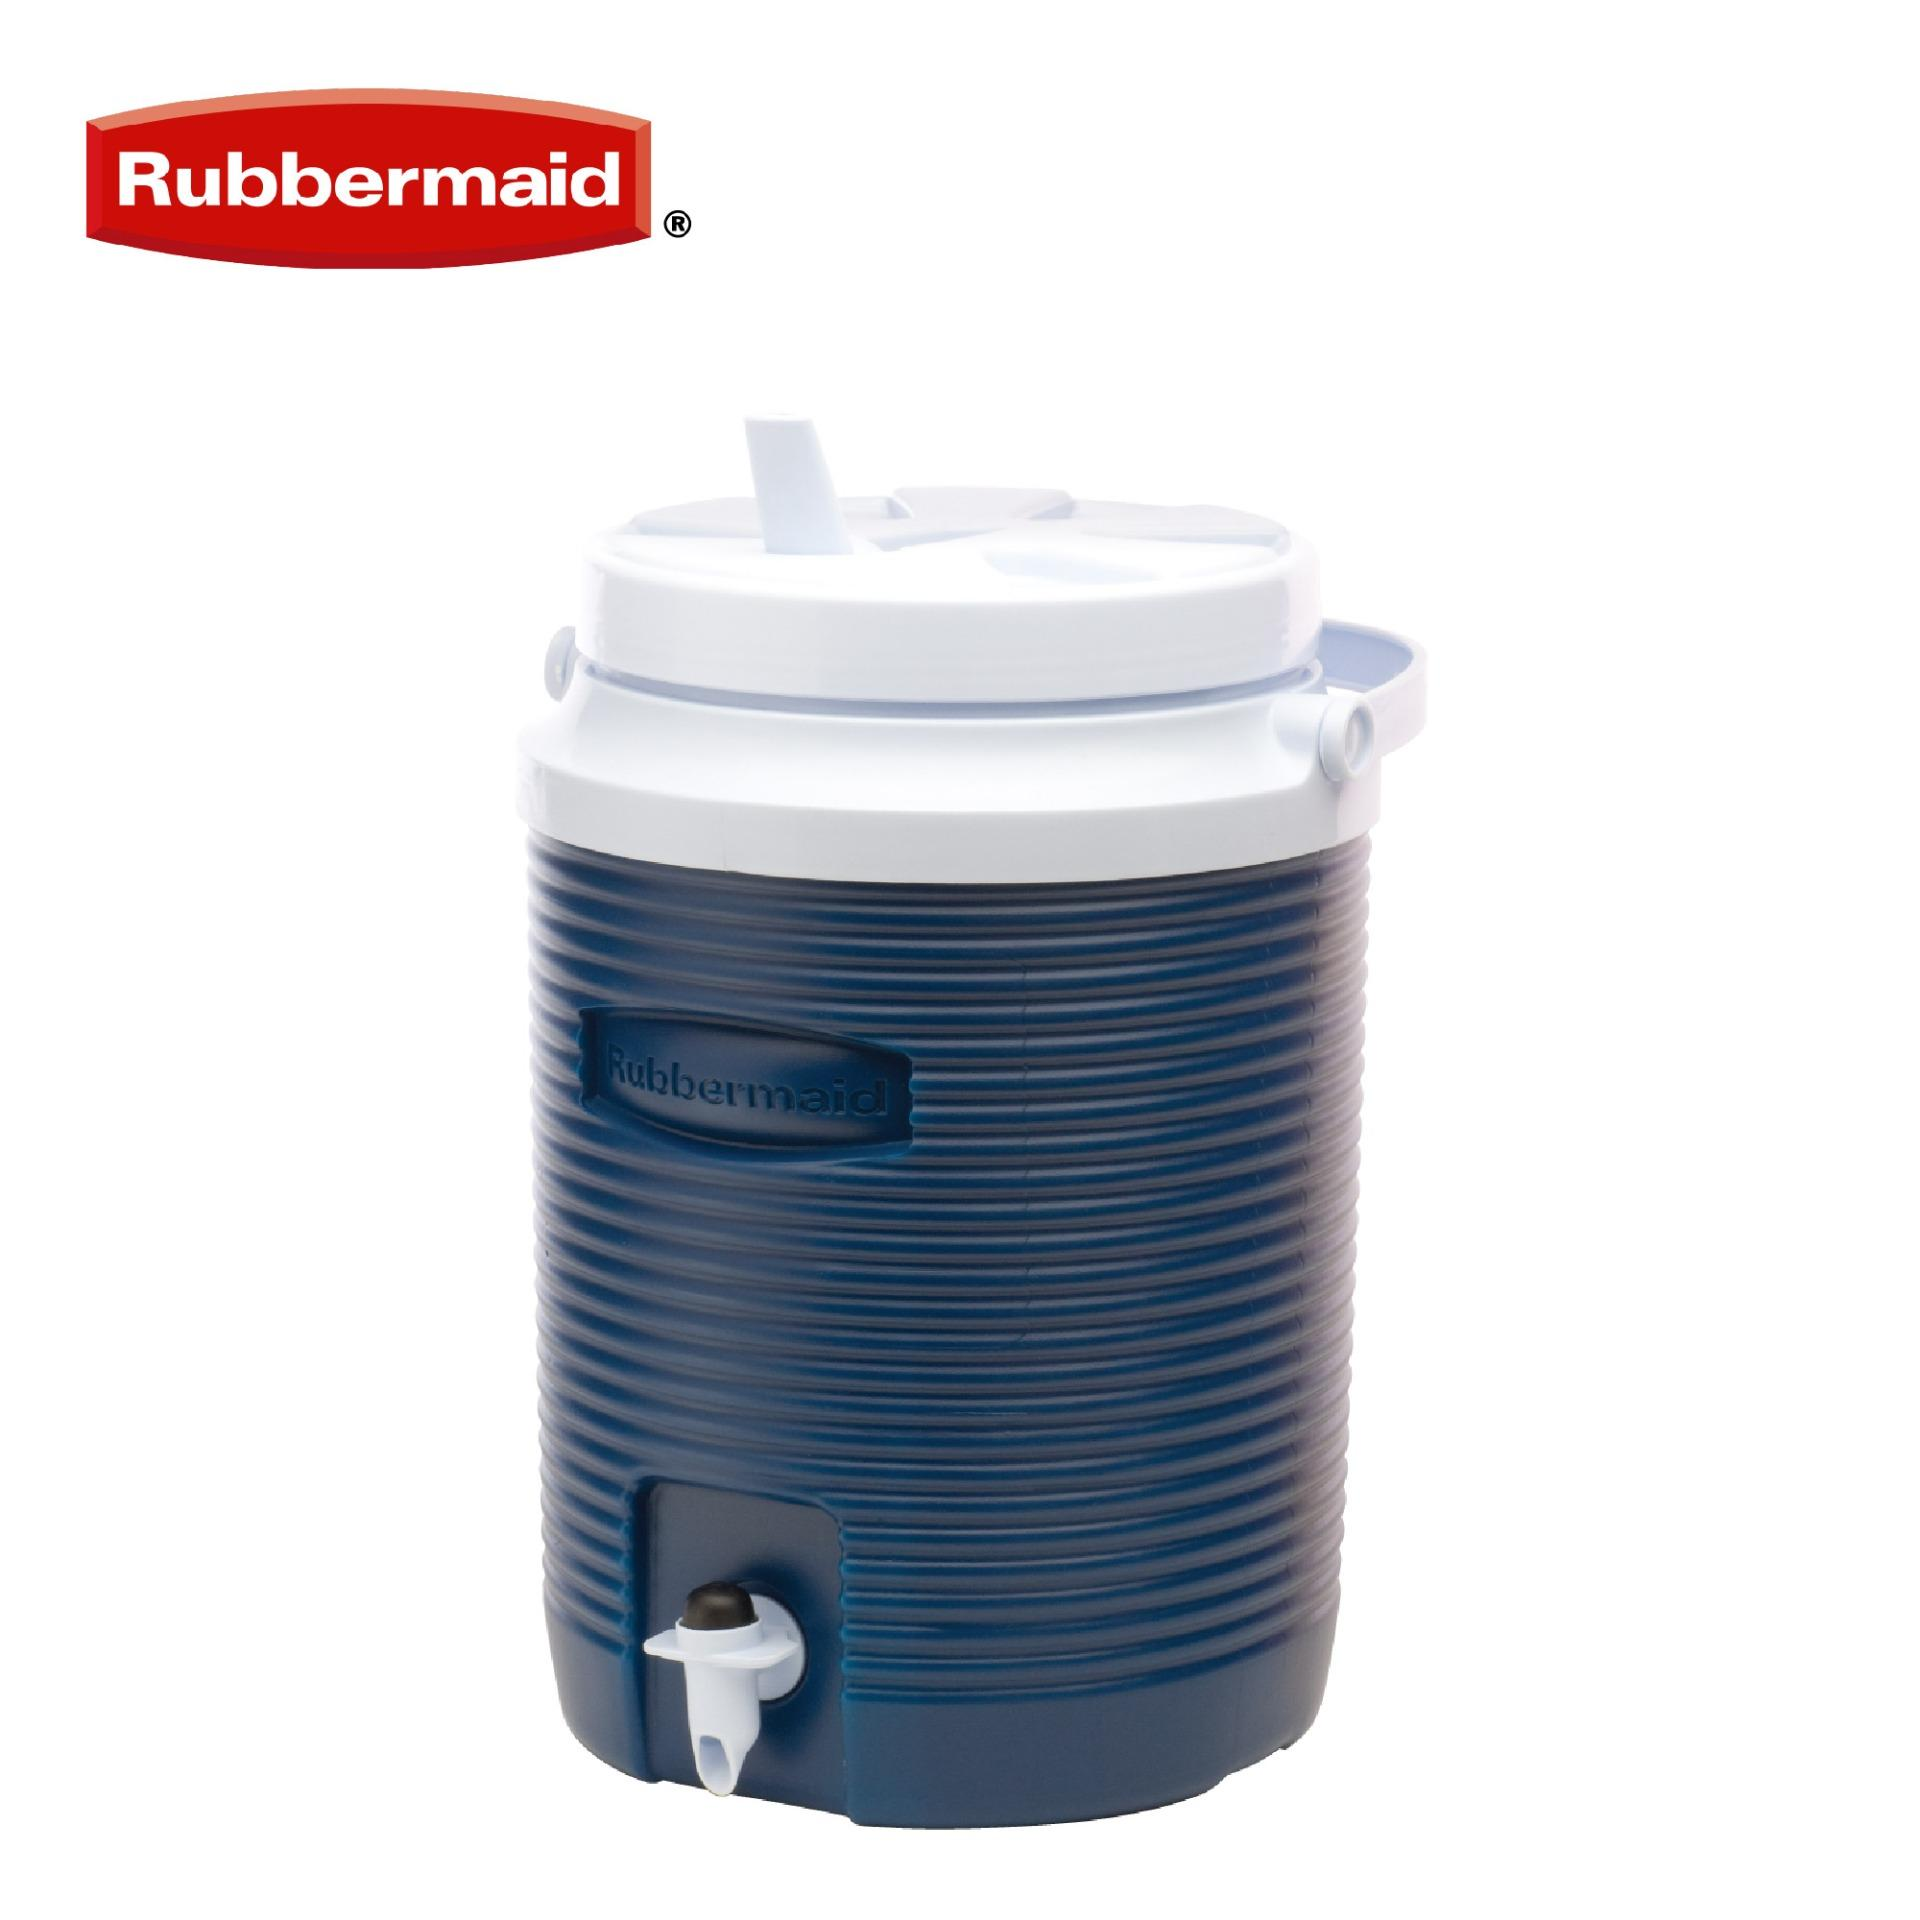 098d4165cb Rubbermaid Philippines: Rubbermaid price list - Rubbermaid Ice Chest ...